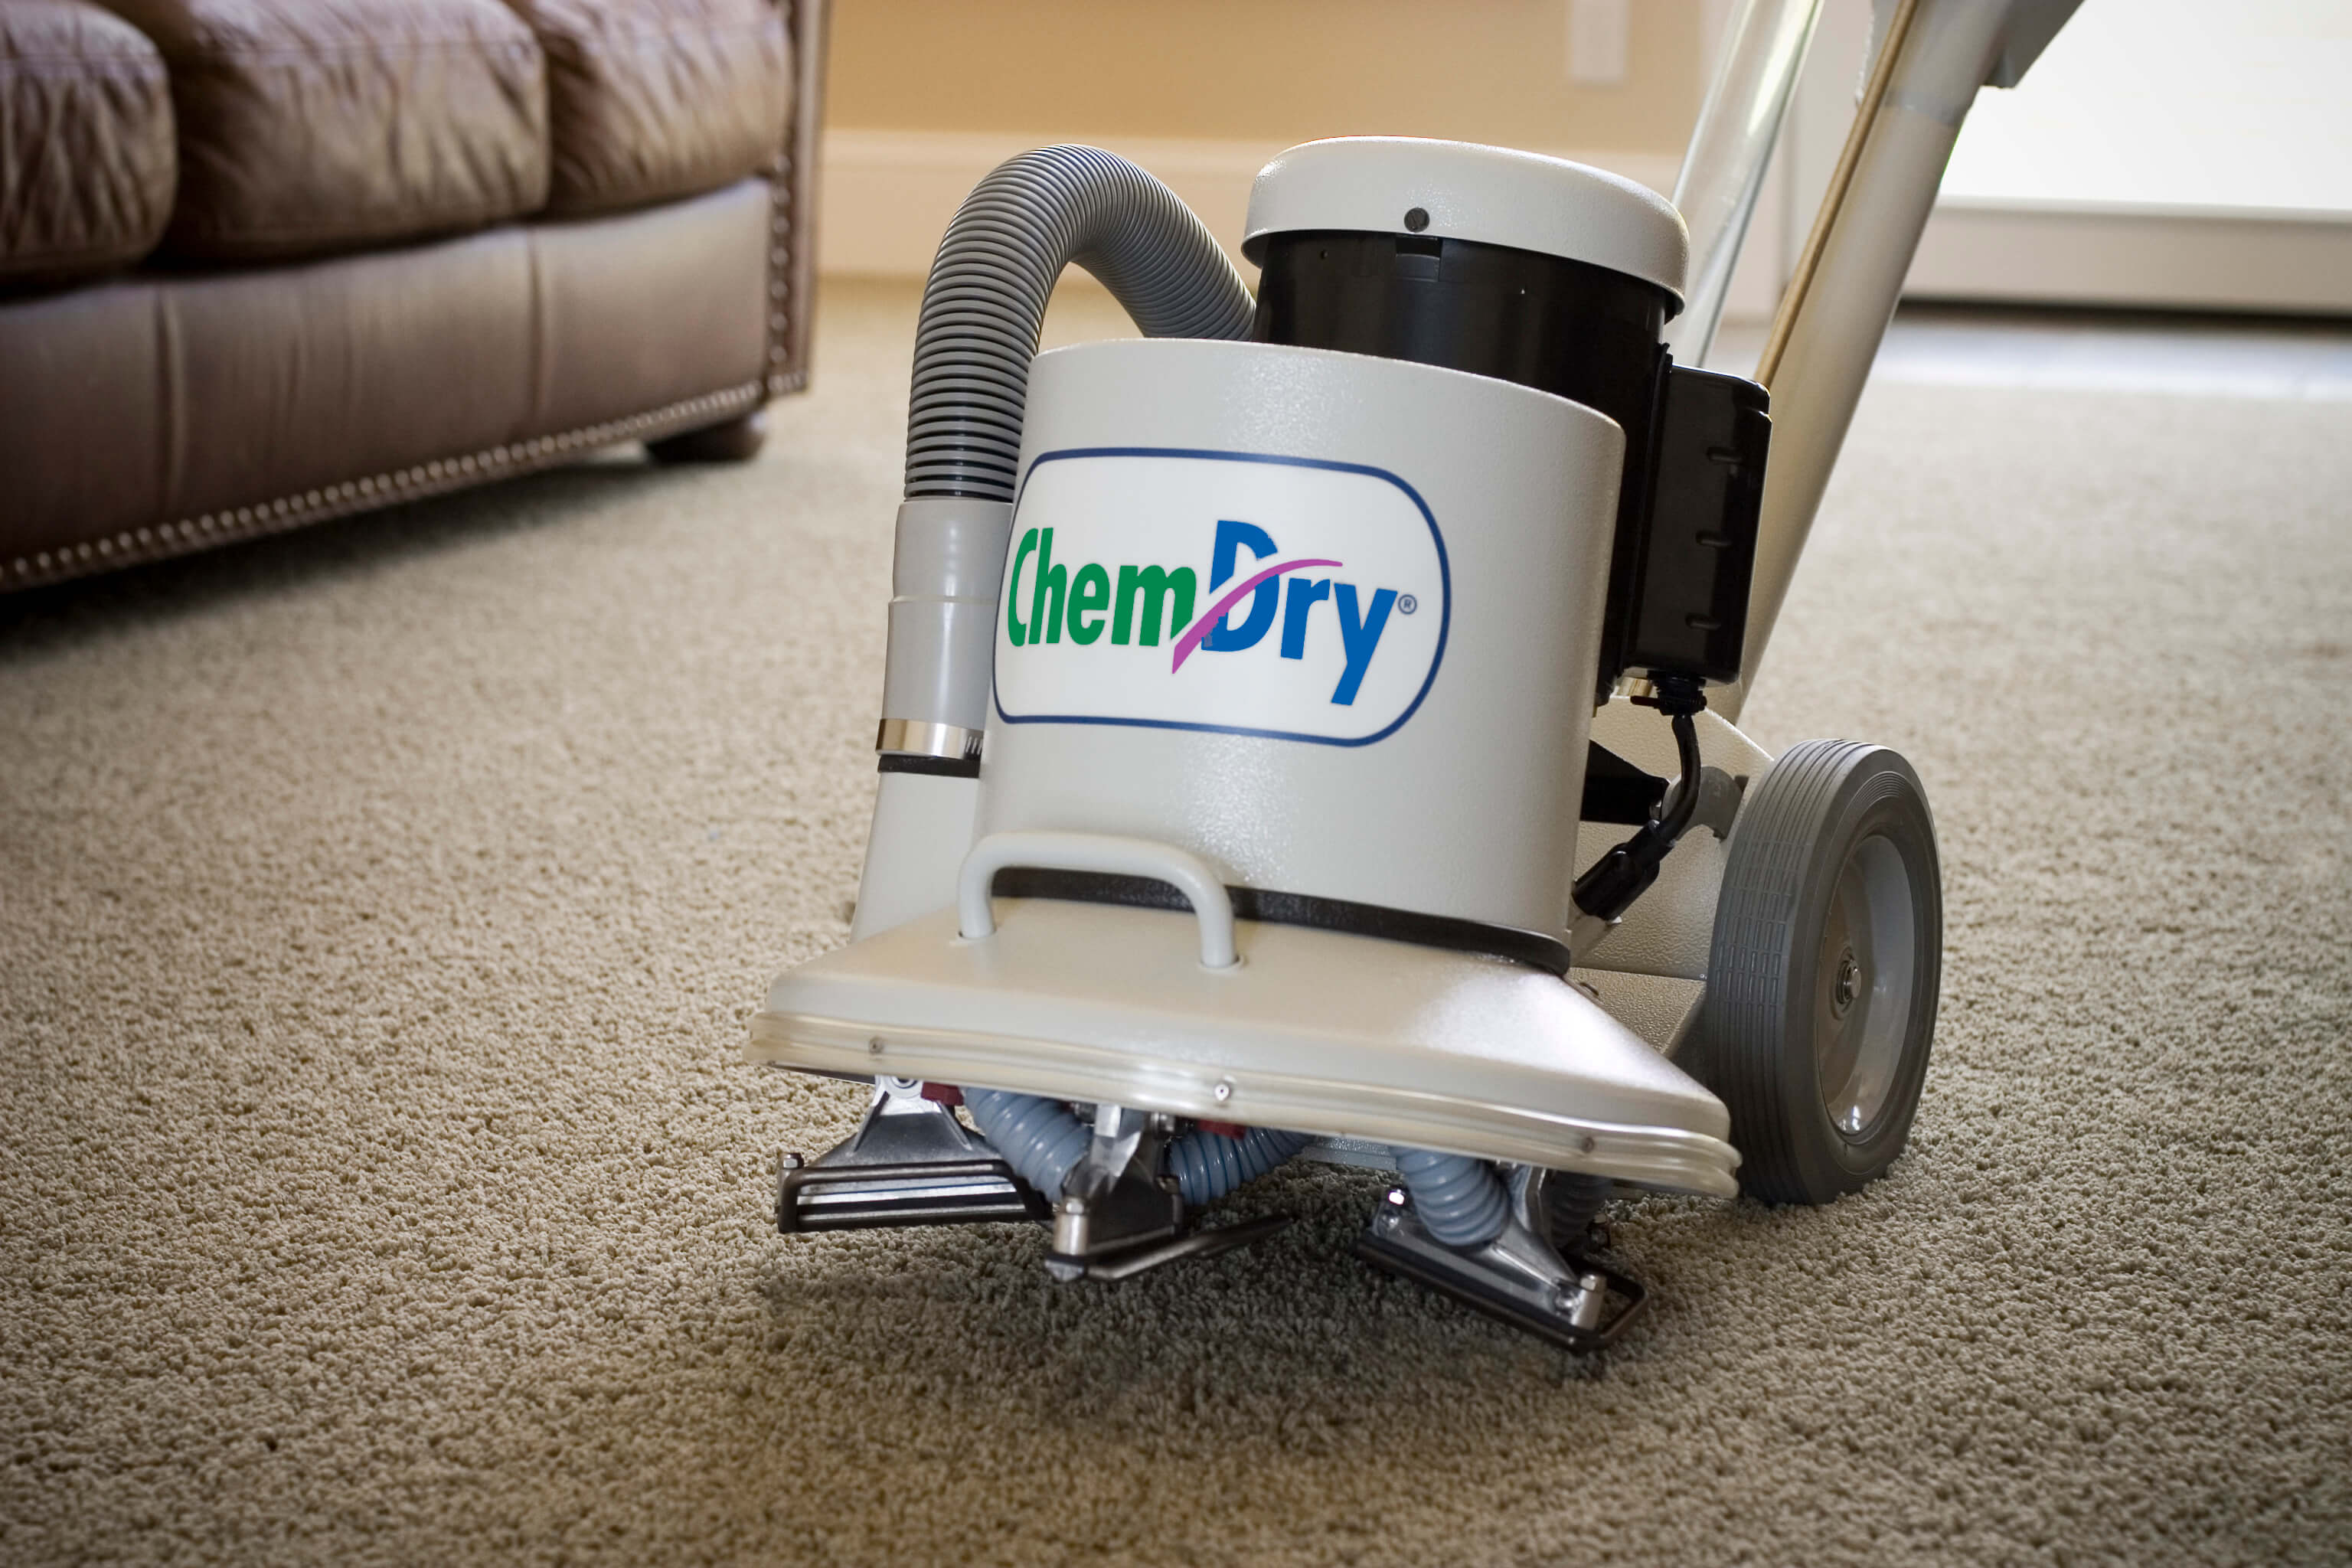 chem-dry special carpet cleaning tool